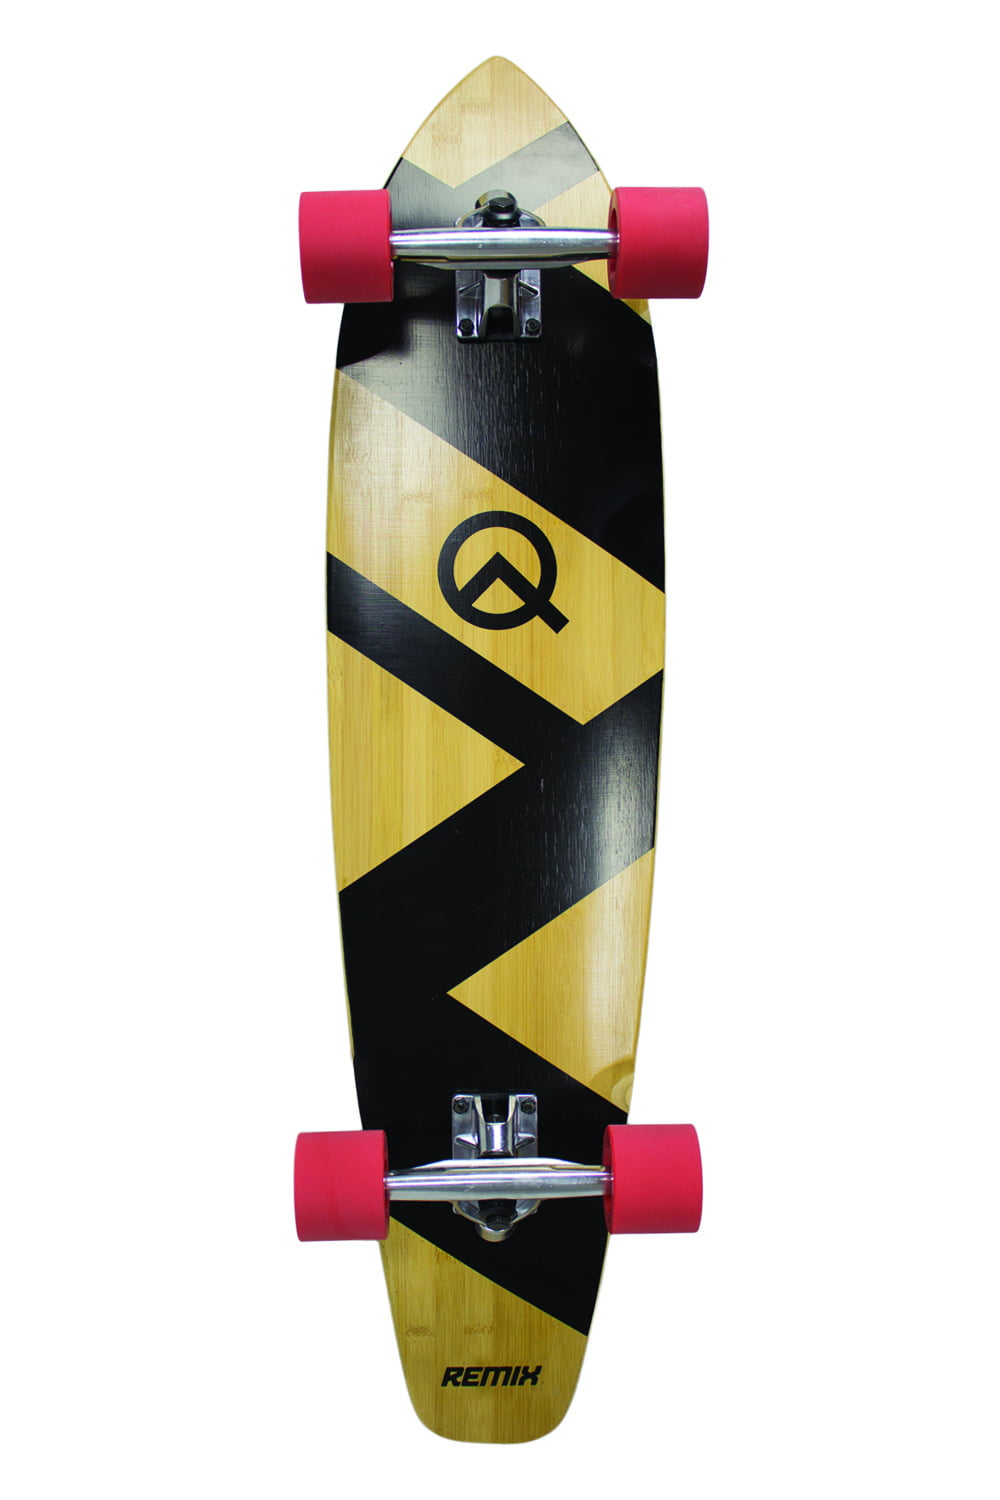 Quest 36 inch Ultra Cruiser Remix Longboard Skateboard by Made in Mars